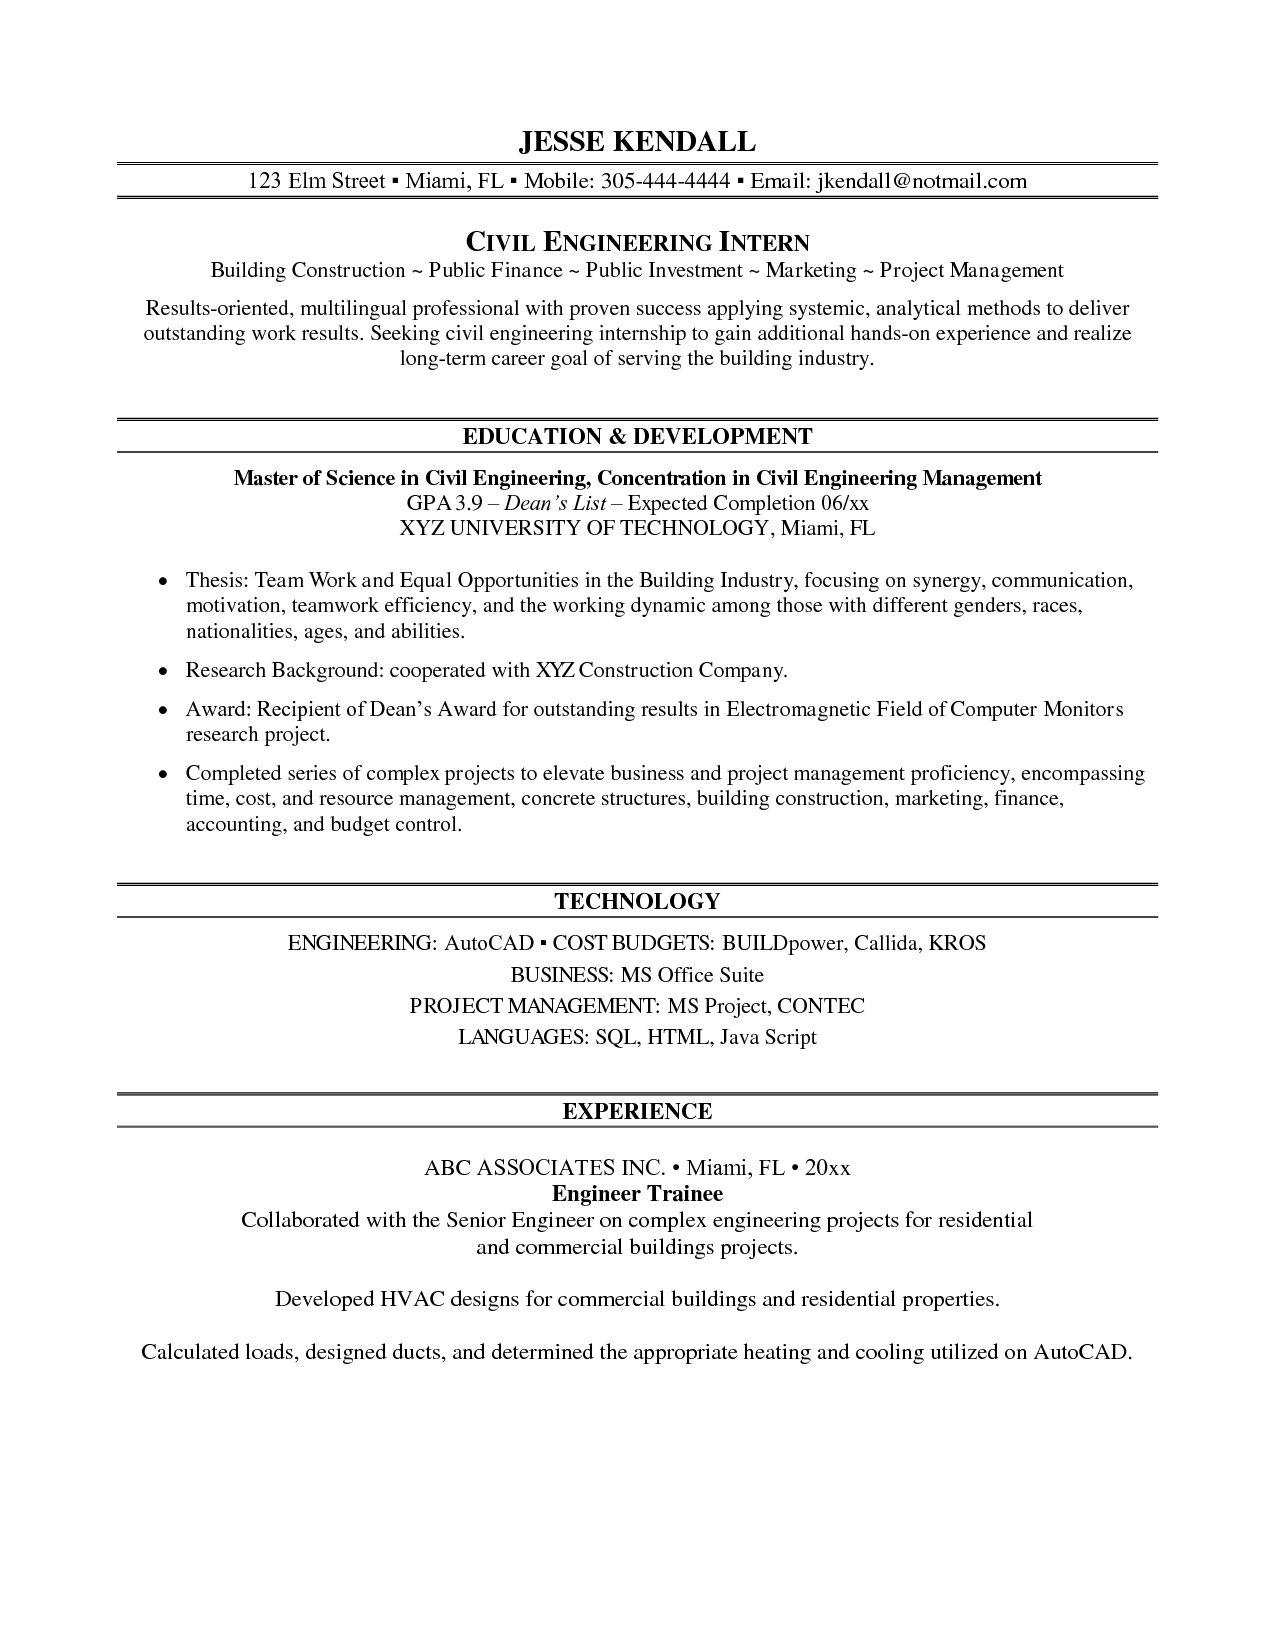 Pin by resumejob on Resume Job | Internship resume, Job resume ...